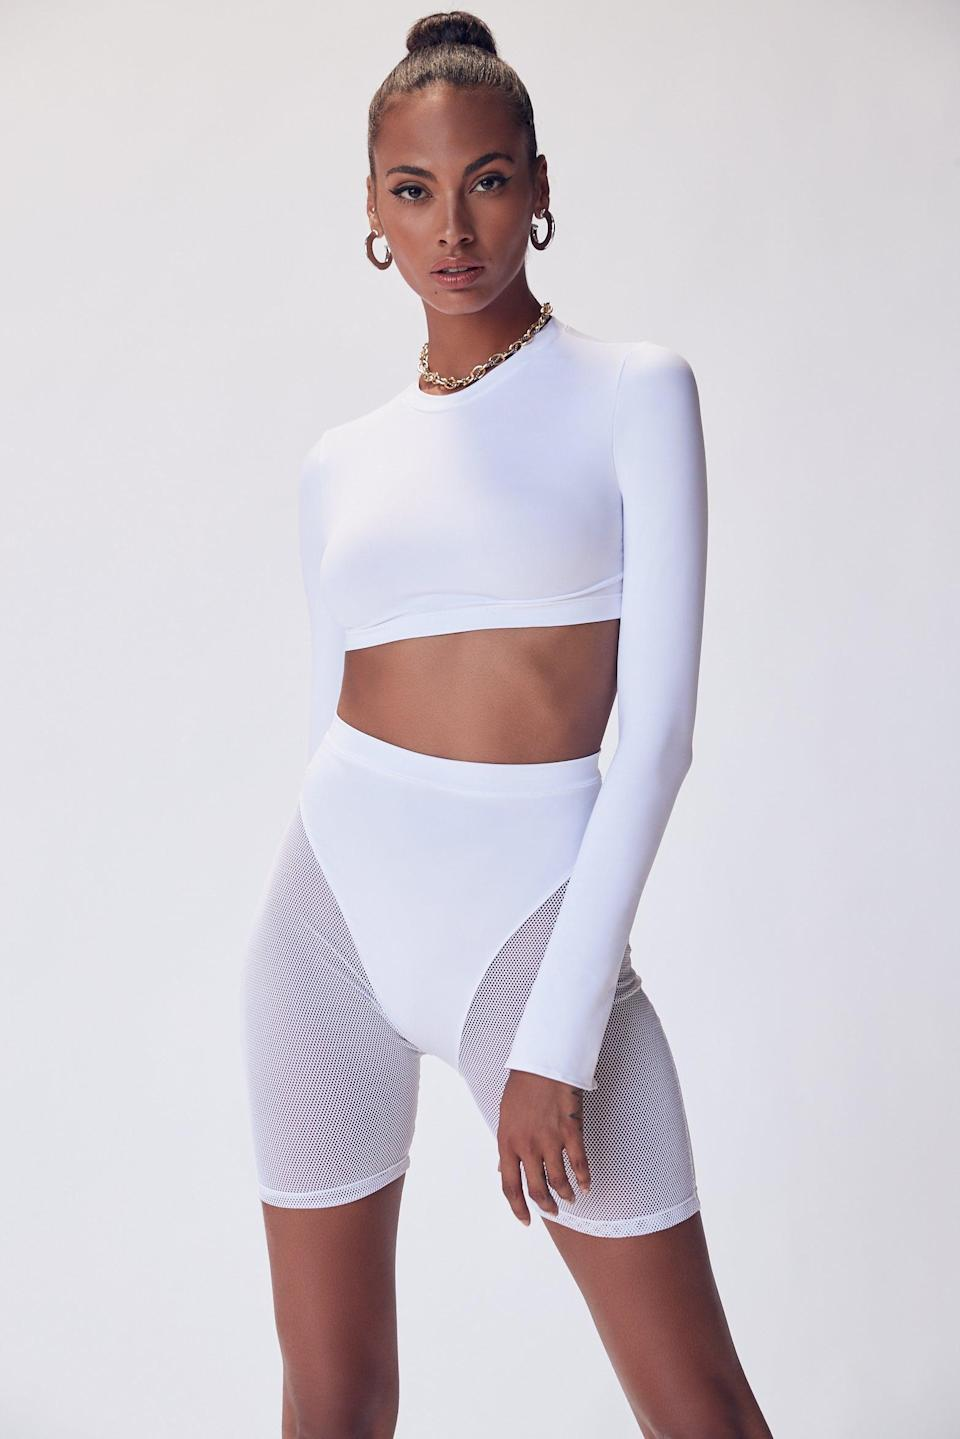 "<br> <br> <strong>LaQuan Smith x Revolve</strong> Crop Top, $, available at <a href=""https://go.skimresources.com/?id=30283X879131&url=https%3A%2F%2Fwww.revolve.com%2Flaquan-smith-x-revolve-crop-top%2Fdp%2FLAQH-WS1%2F%3Fd%3DWomens%26page%3D1%26lc%3D5%26itrownum%3D2%26itcurrpage%3D1%26itview%3D05%26hsclk12756%3D2%26hspos%3D1"" rel=""nofollow noopener"" target=""_blank"" data-ylk=""slk:Revolve"" class=""link rapid-noclick-resp"">Revolve</a> <br> <br> <strong>LaQuan Smith x Revolve</strong> Mesh Biker Short, $, available at <a href=""https://go.skimresources.com/?id=30283X879131&url=https%3A%2F%2Fwww.revolve.com%2Flaquan-smith-x-revolve-mesh-biker-short%2Fdp%2FLAQH-WF2%2F%3Fd%3DWomens%26page%3D1%26lc%3D3%26itrownum%3D1%26itcurrpage%3D1%26itview%3D05%26hsclk12756%3D2%26hspos%3D1"" rel=""nofollow noopener"" target=""_blank"" data-ylk=""slk:Revolve"" class=""link rapid-noclick-resp"">Revolve</a>"